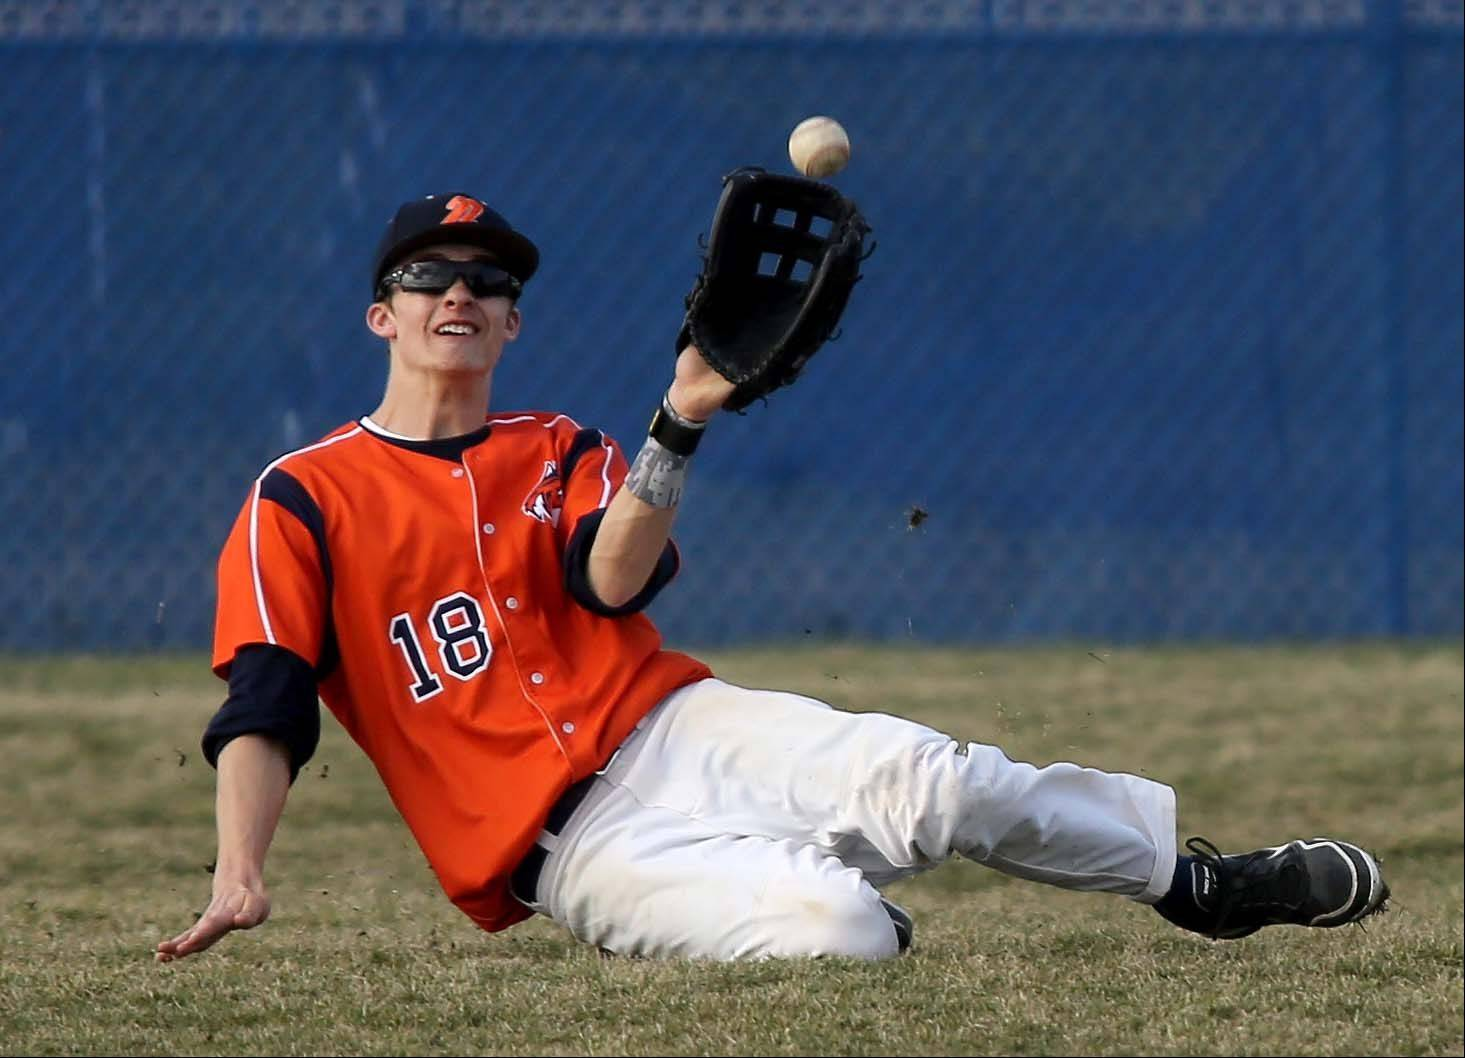 Naperville North�s Alex Garon makes a sliding catch in the outfield during Monday�s baseball game against Wheaton North in Naperville.